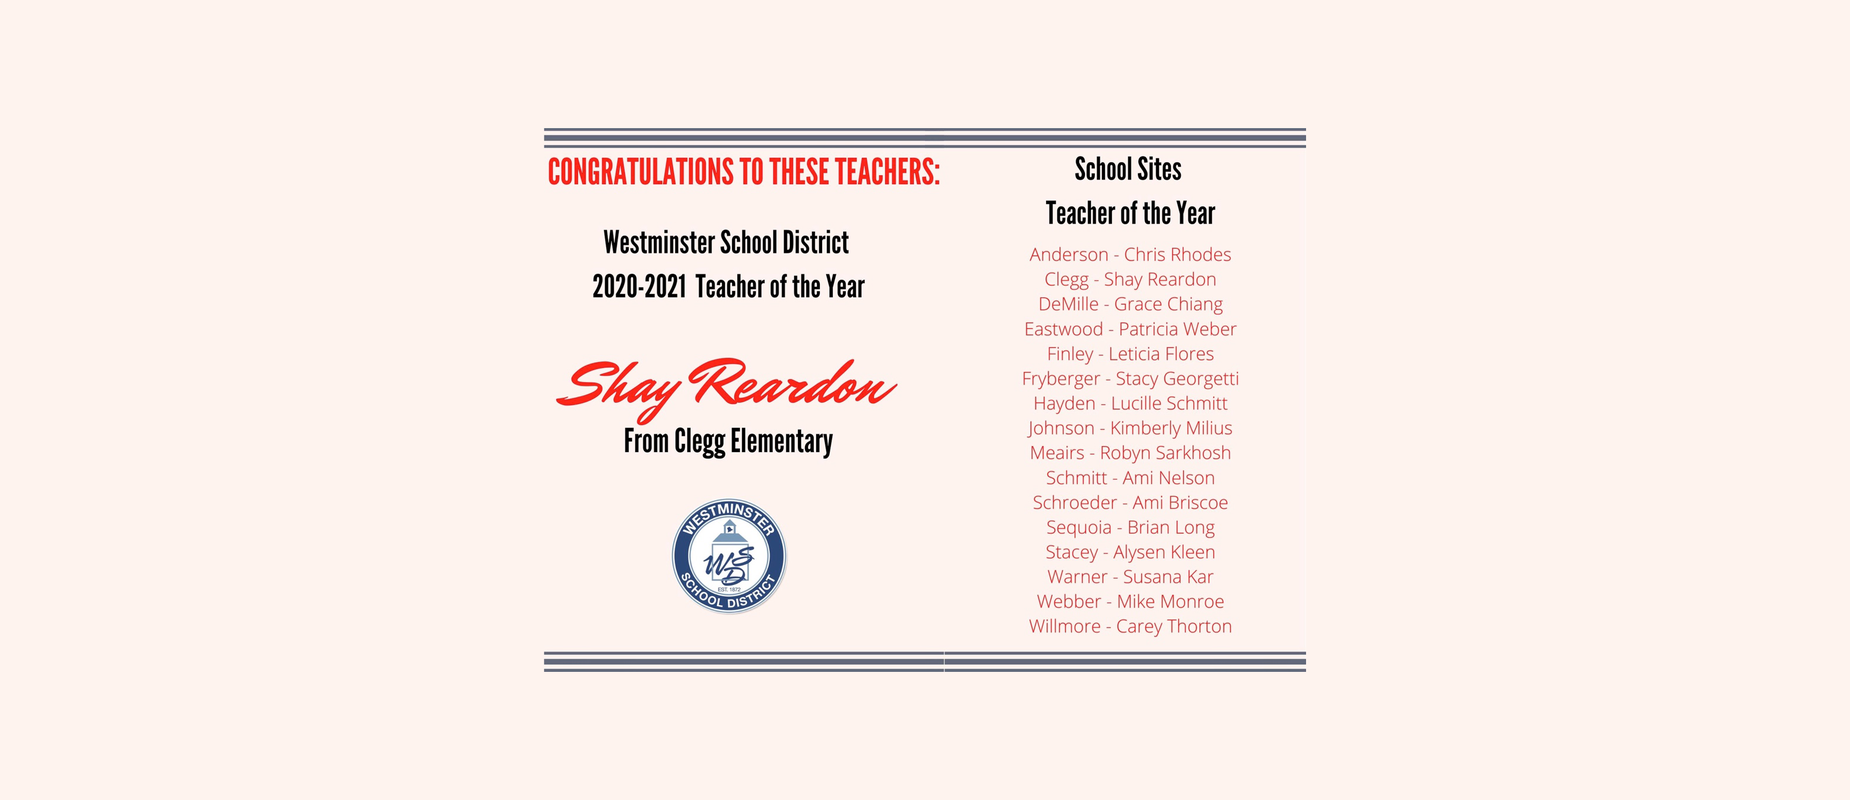 Teacher of the Year 2020 Image